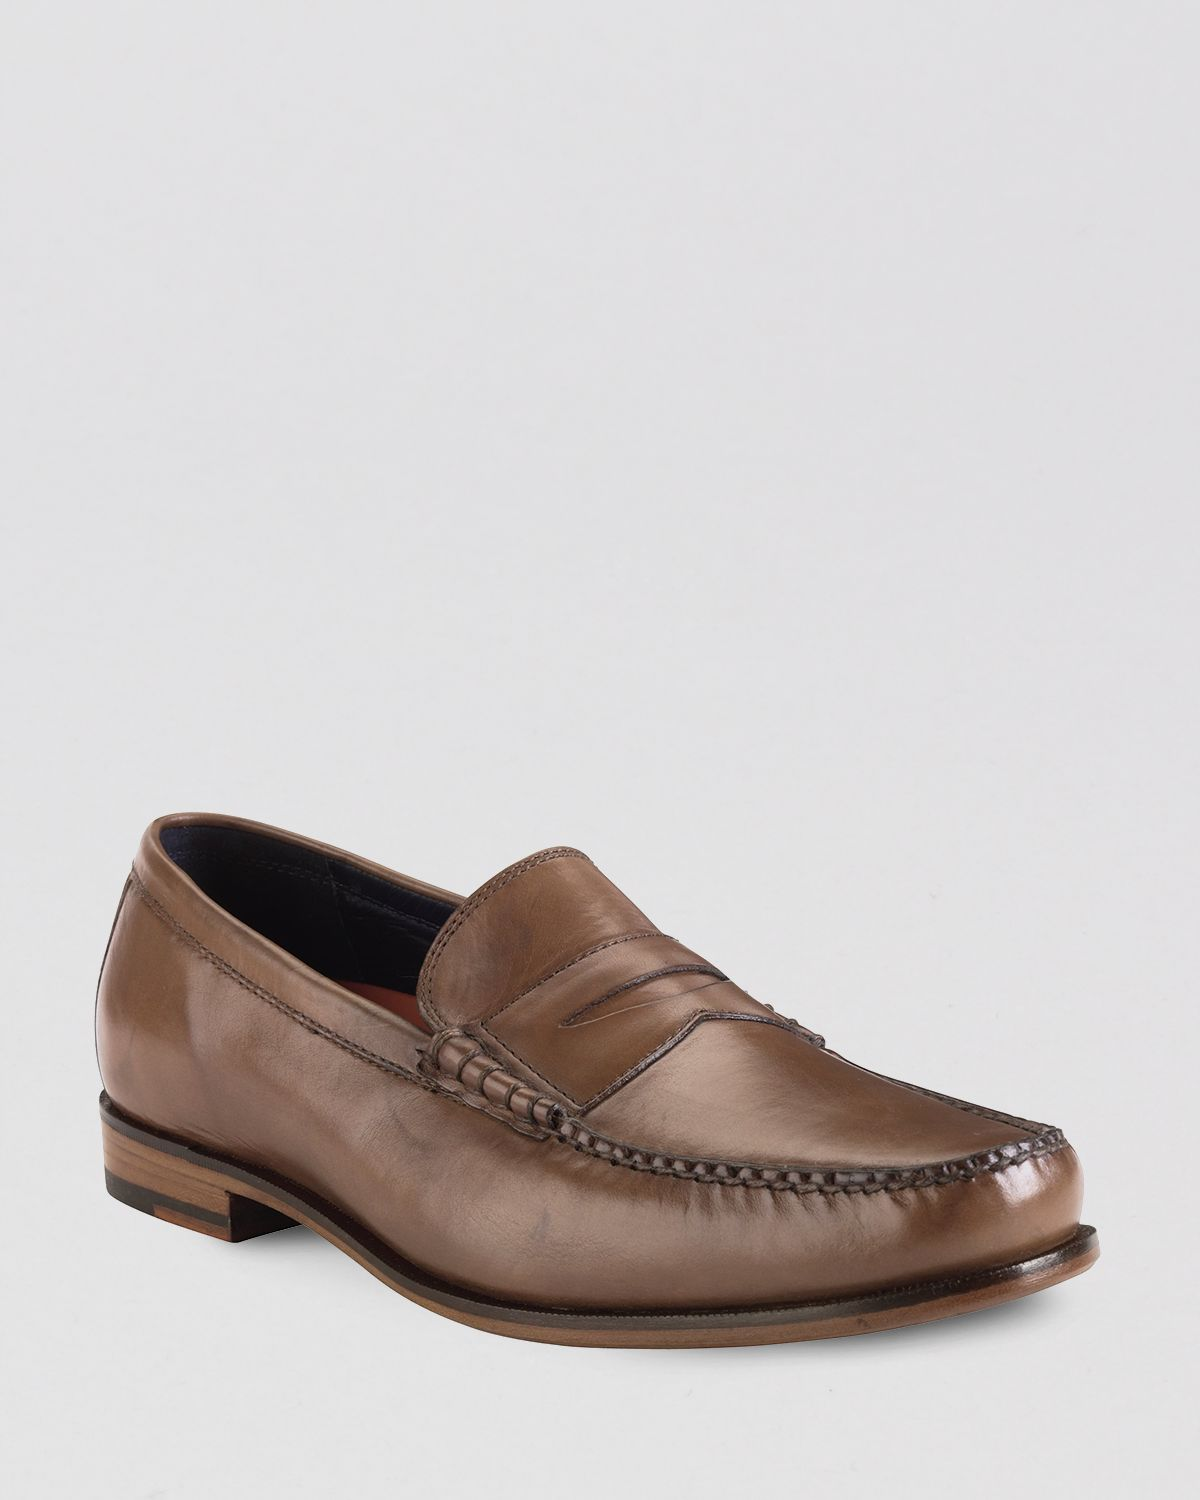 Lyst - Cole Haan Hudson Leather Penny Loafers in Brown for Men